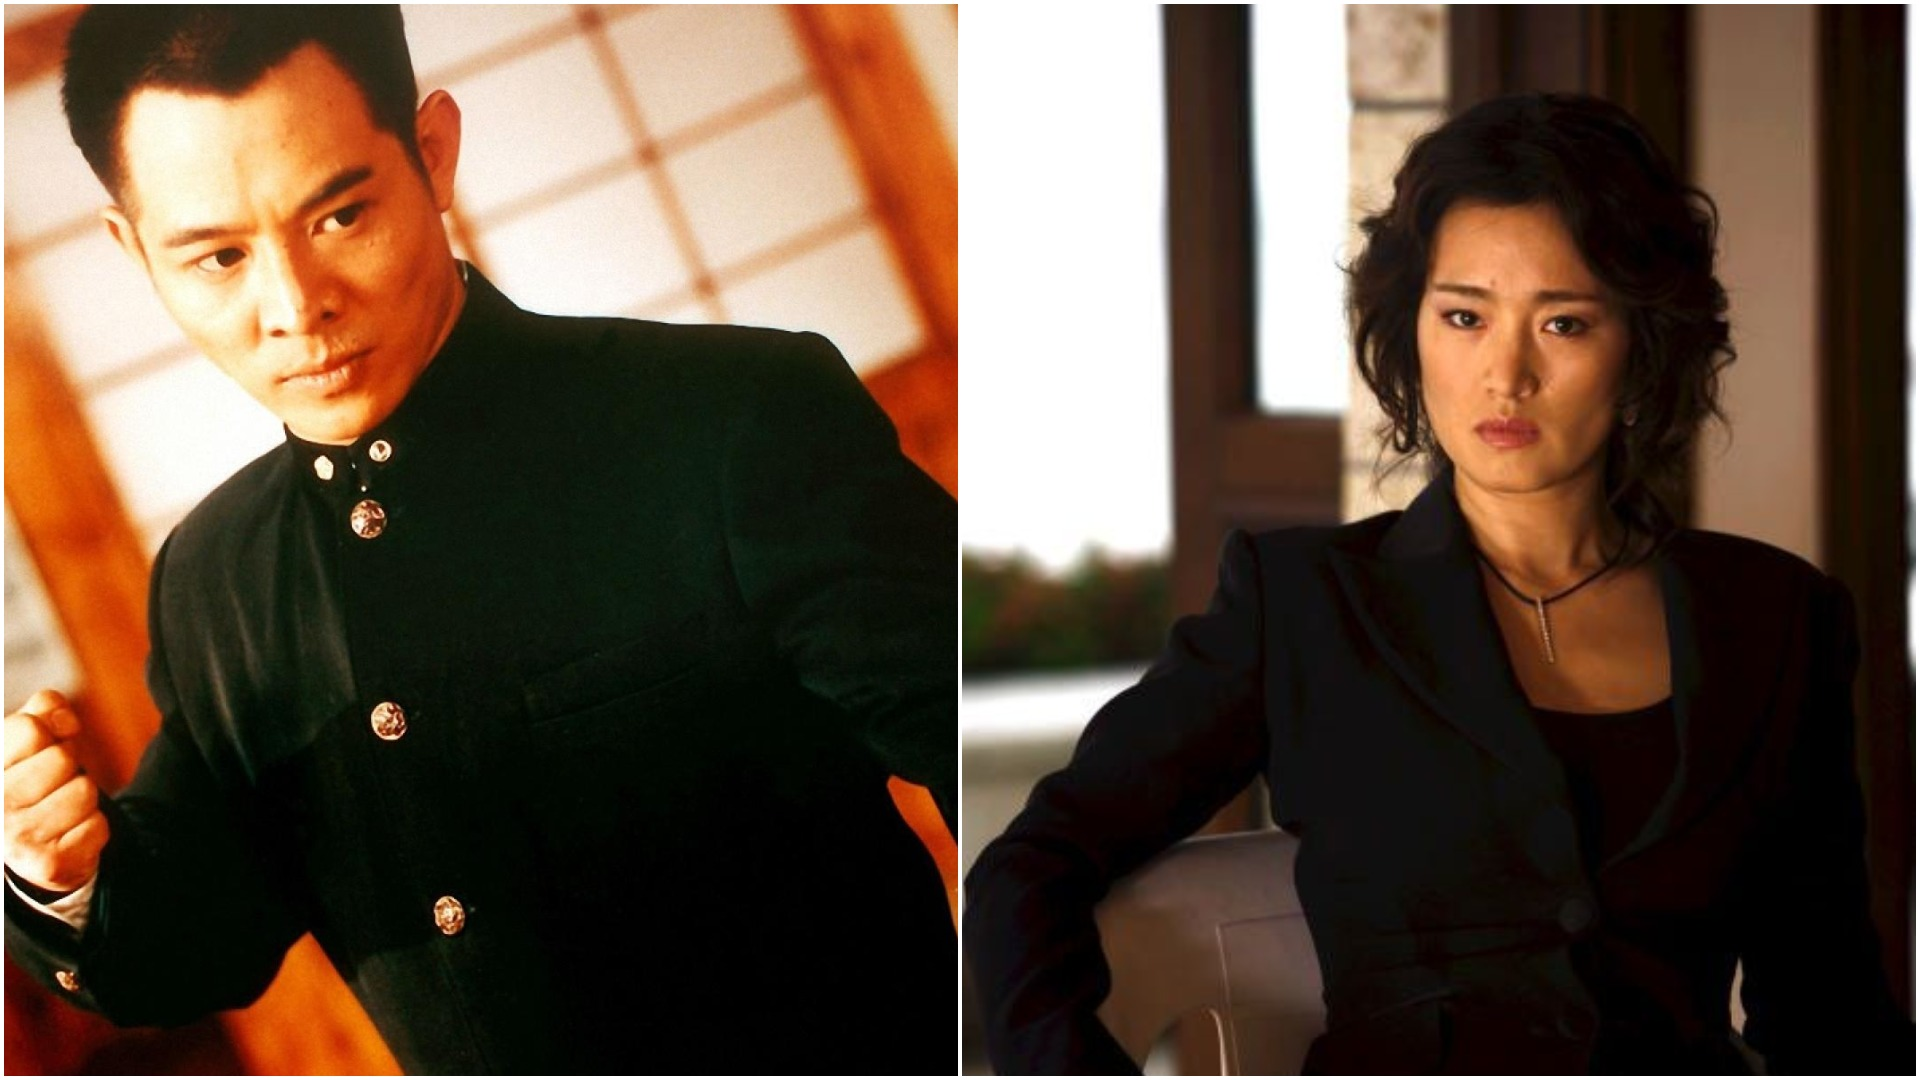 'Mulan' Live Action Movie Adds Jet Li & Gong Li To Cast